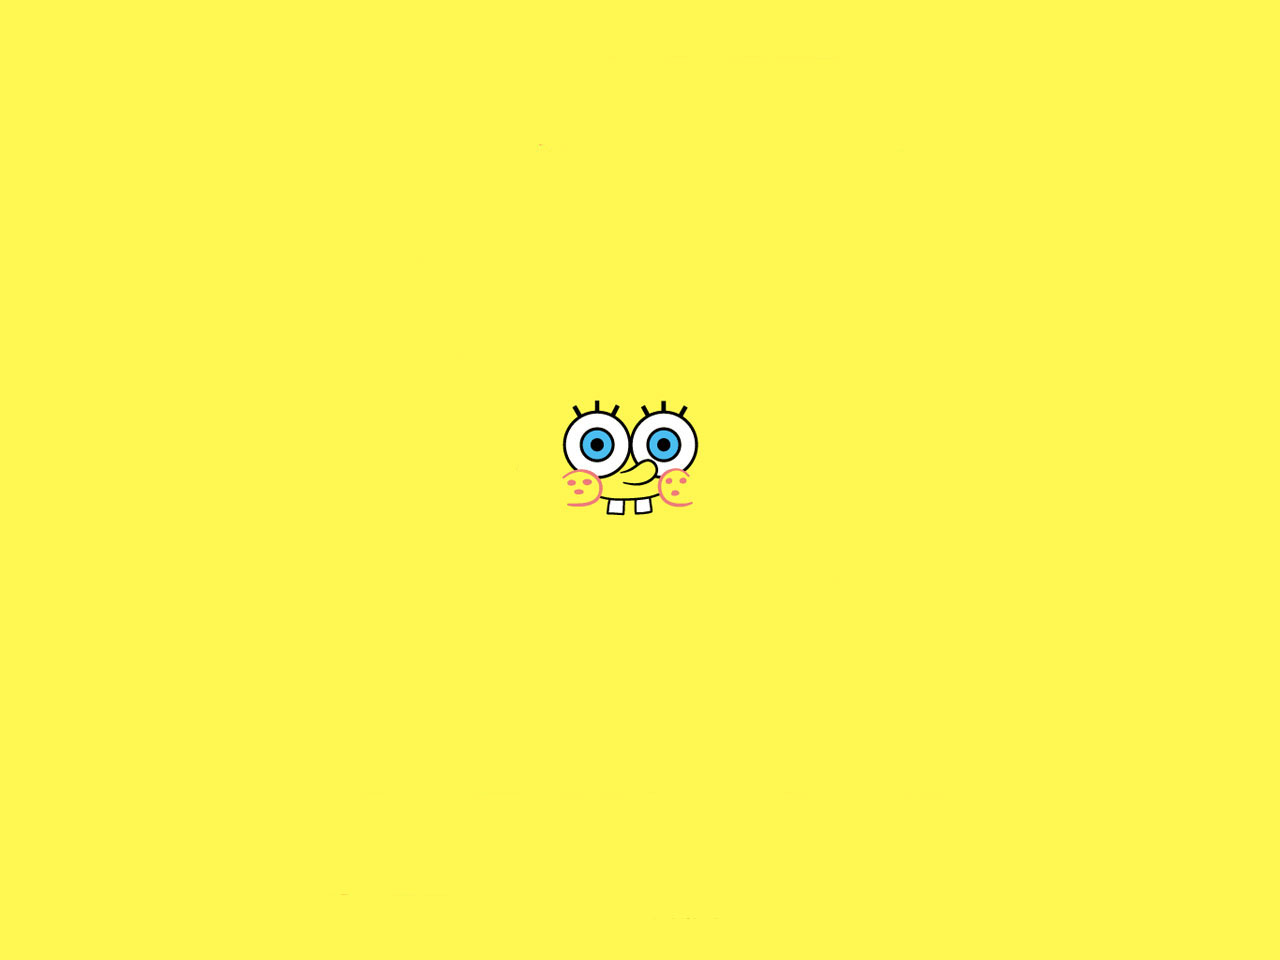 Spongebob Wallpaper Yellow